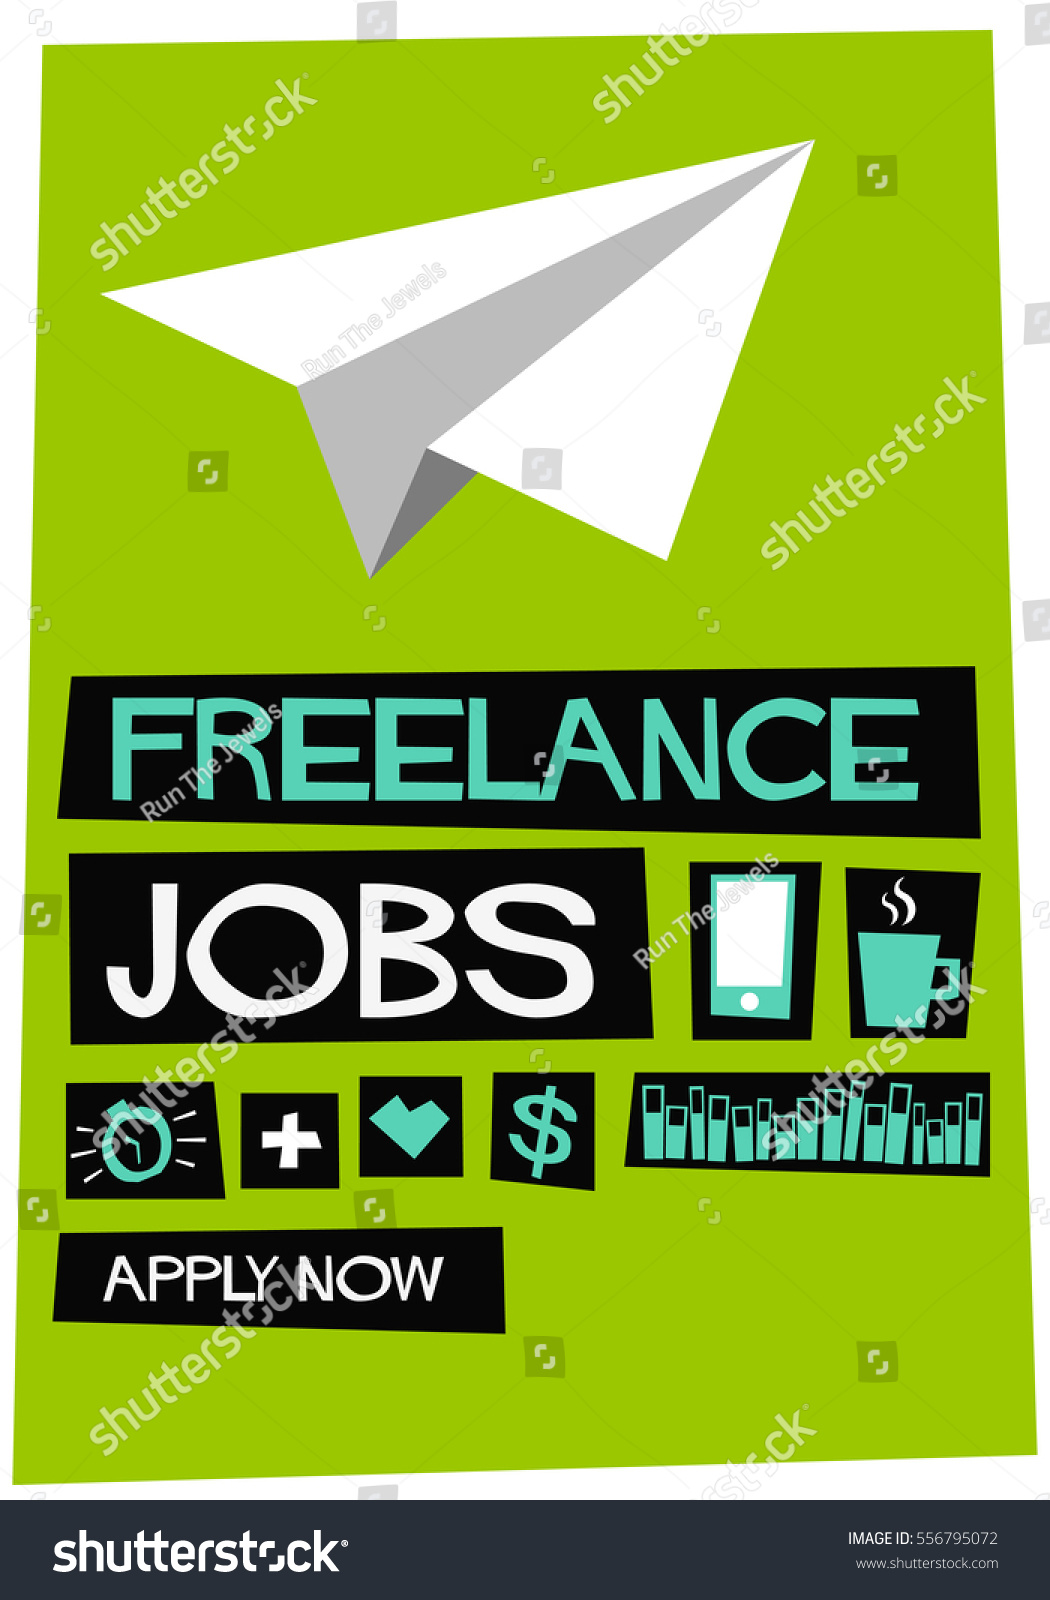 lance jobs apply now flat style stock vector   lance jobs apply now flat style vector illustration recruitment hiring poster design